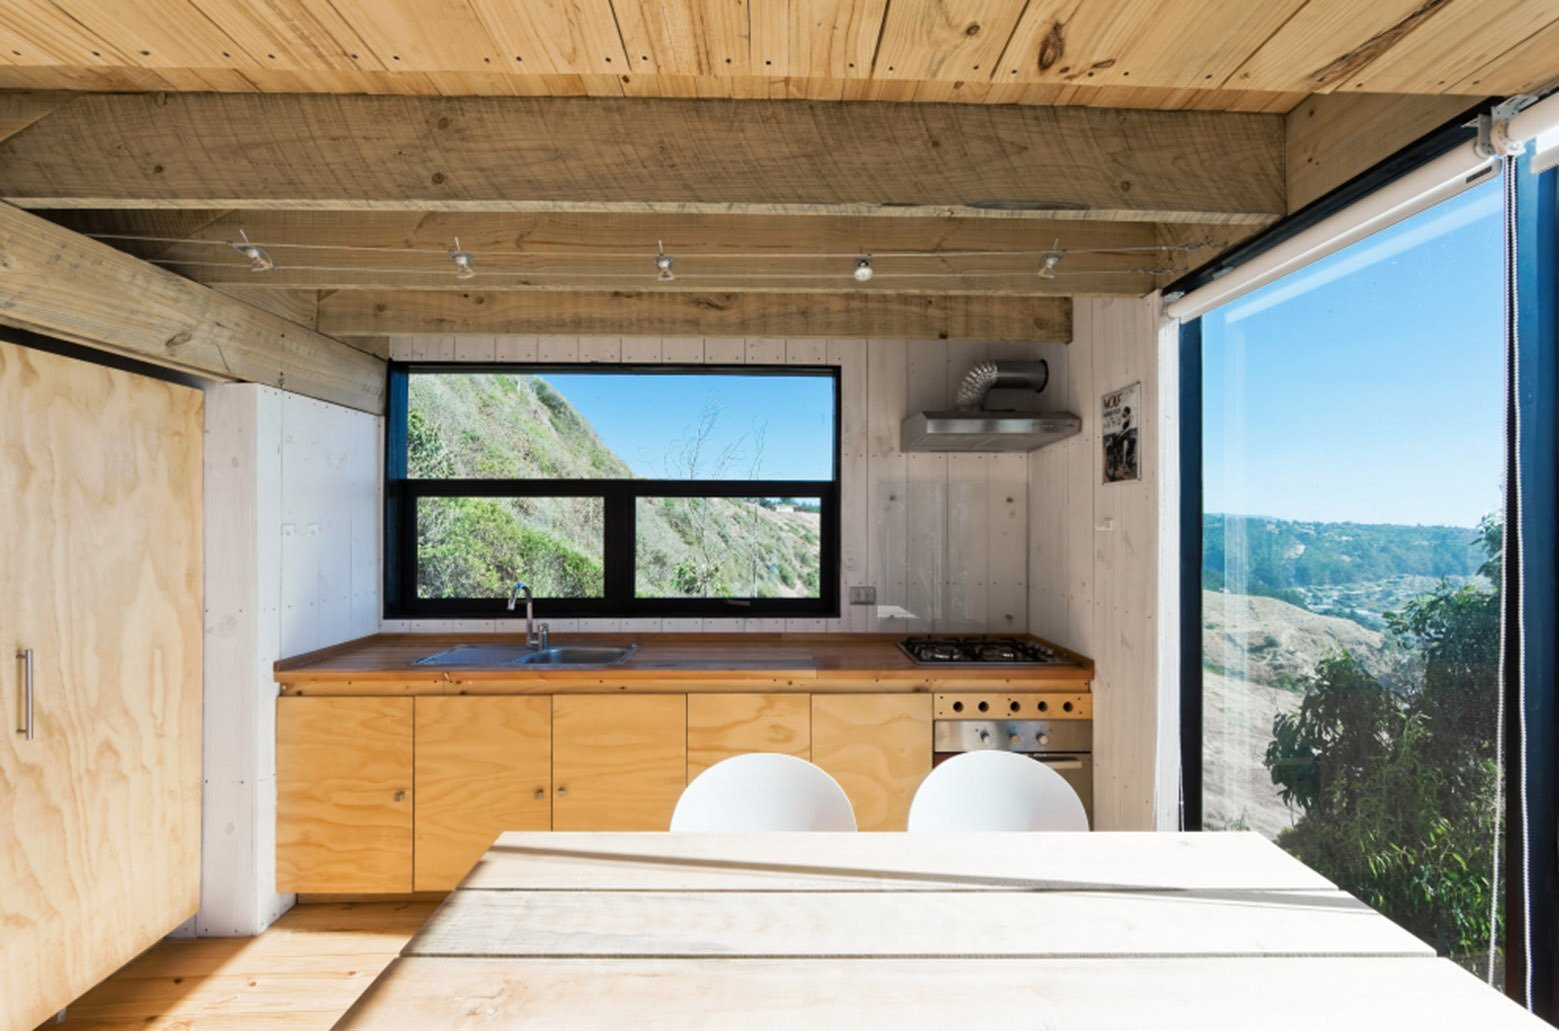 2 Hermanos Cabin - Small Cabin - WMR Arquitectos - Chile - Kitchen - Humble Homes